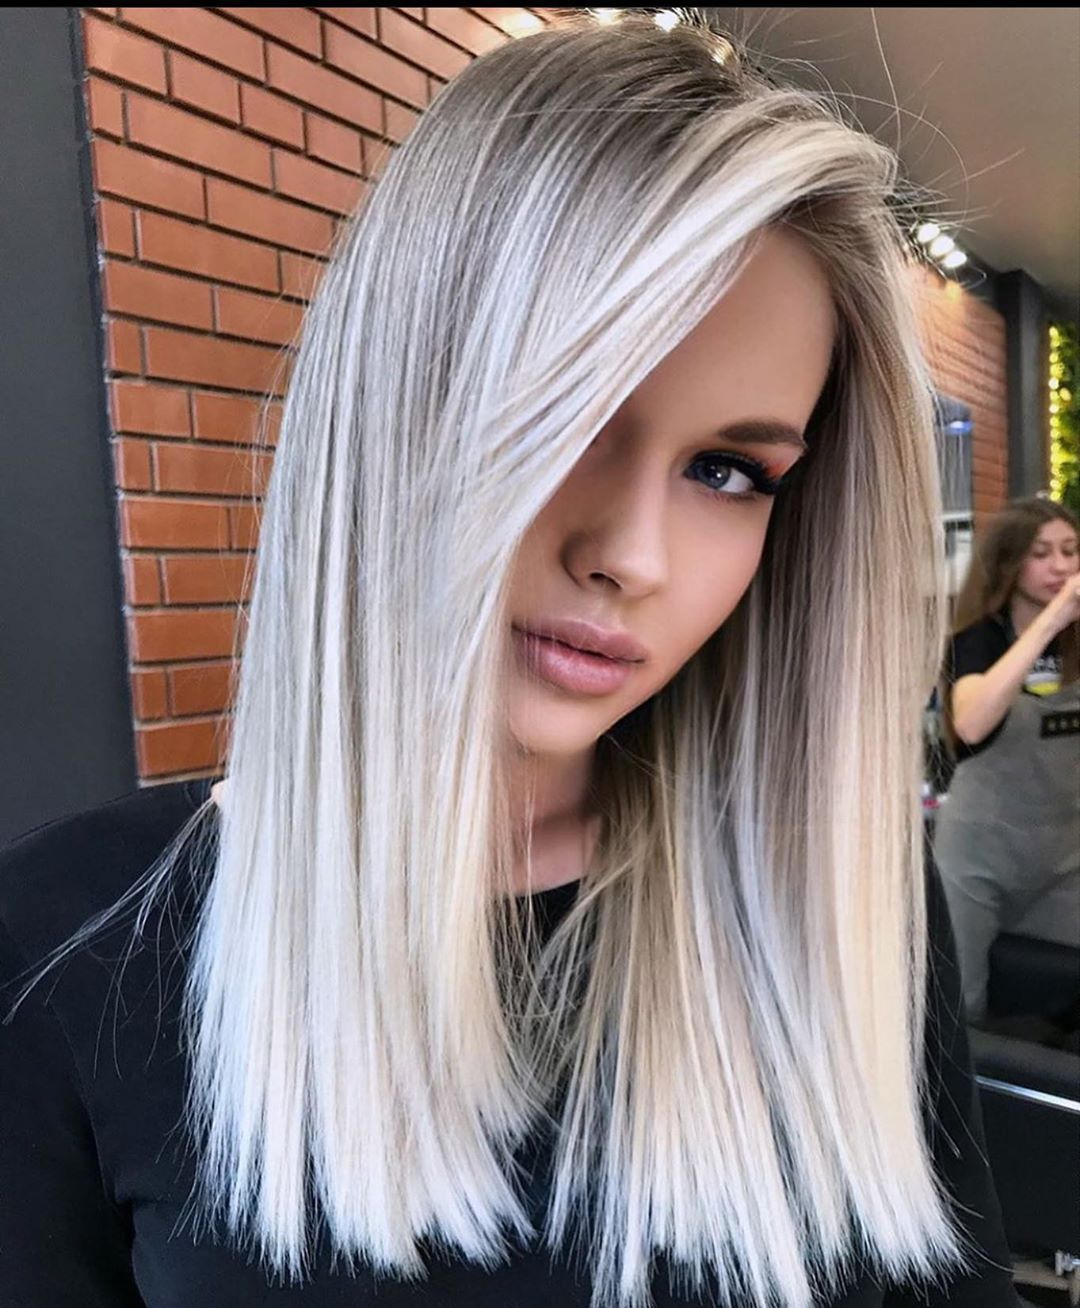 10 Medium Length Hairstyles And Color Switch Ups Medium Haircut 2021 In 2020 Gorgeous Hair Color White Blonde Hair Hair Styles